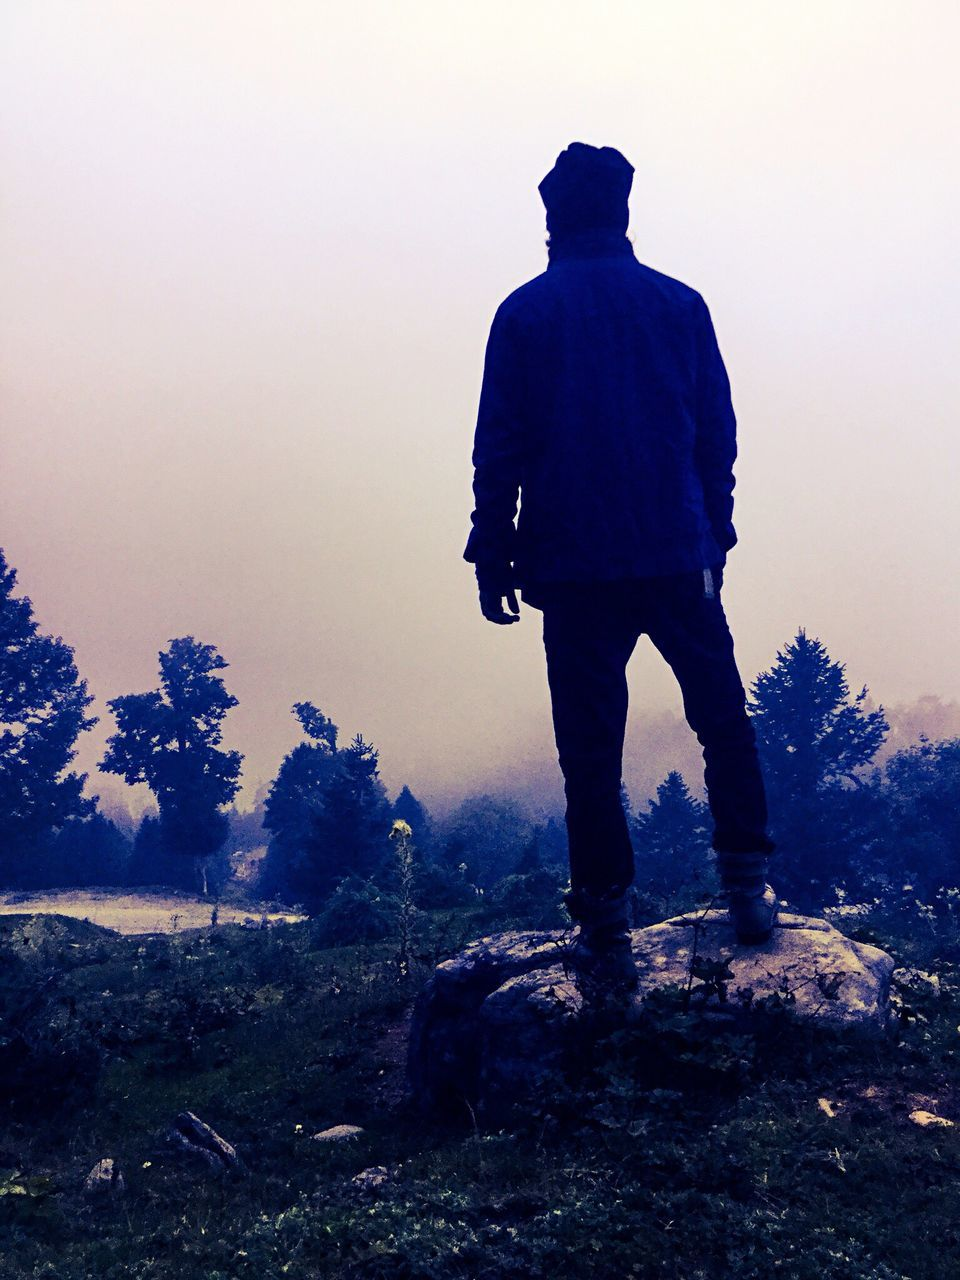 Rear View Of Man On Landscape Against Clear Sky During Foggy Weather